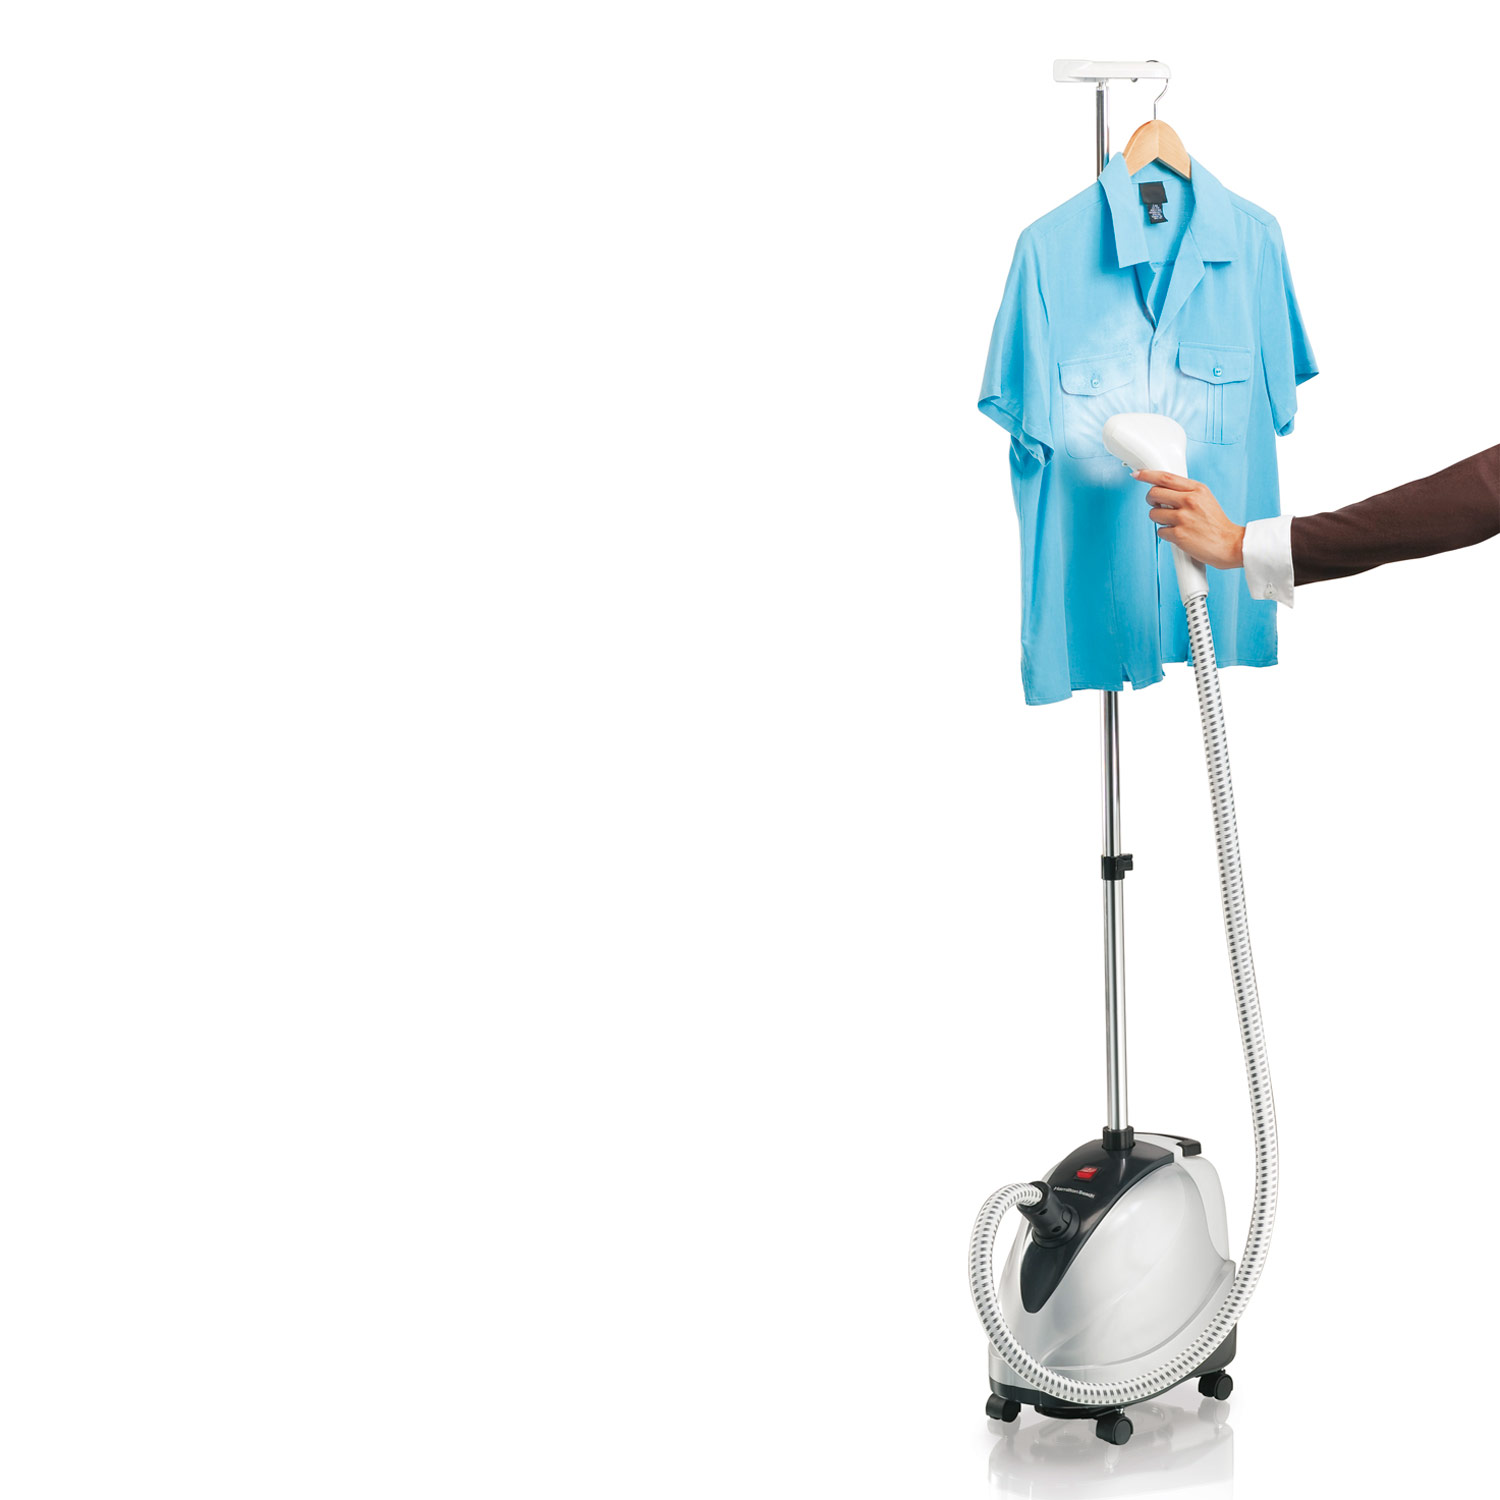 Full-size Garment Steamer with telescoping pole that retracts for easy storage.